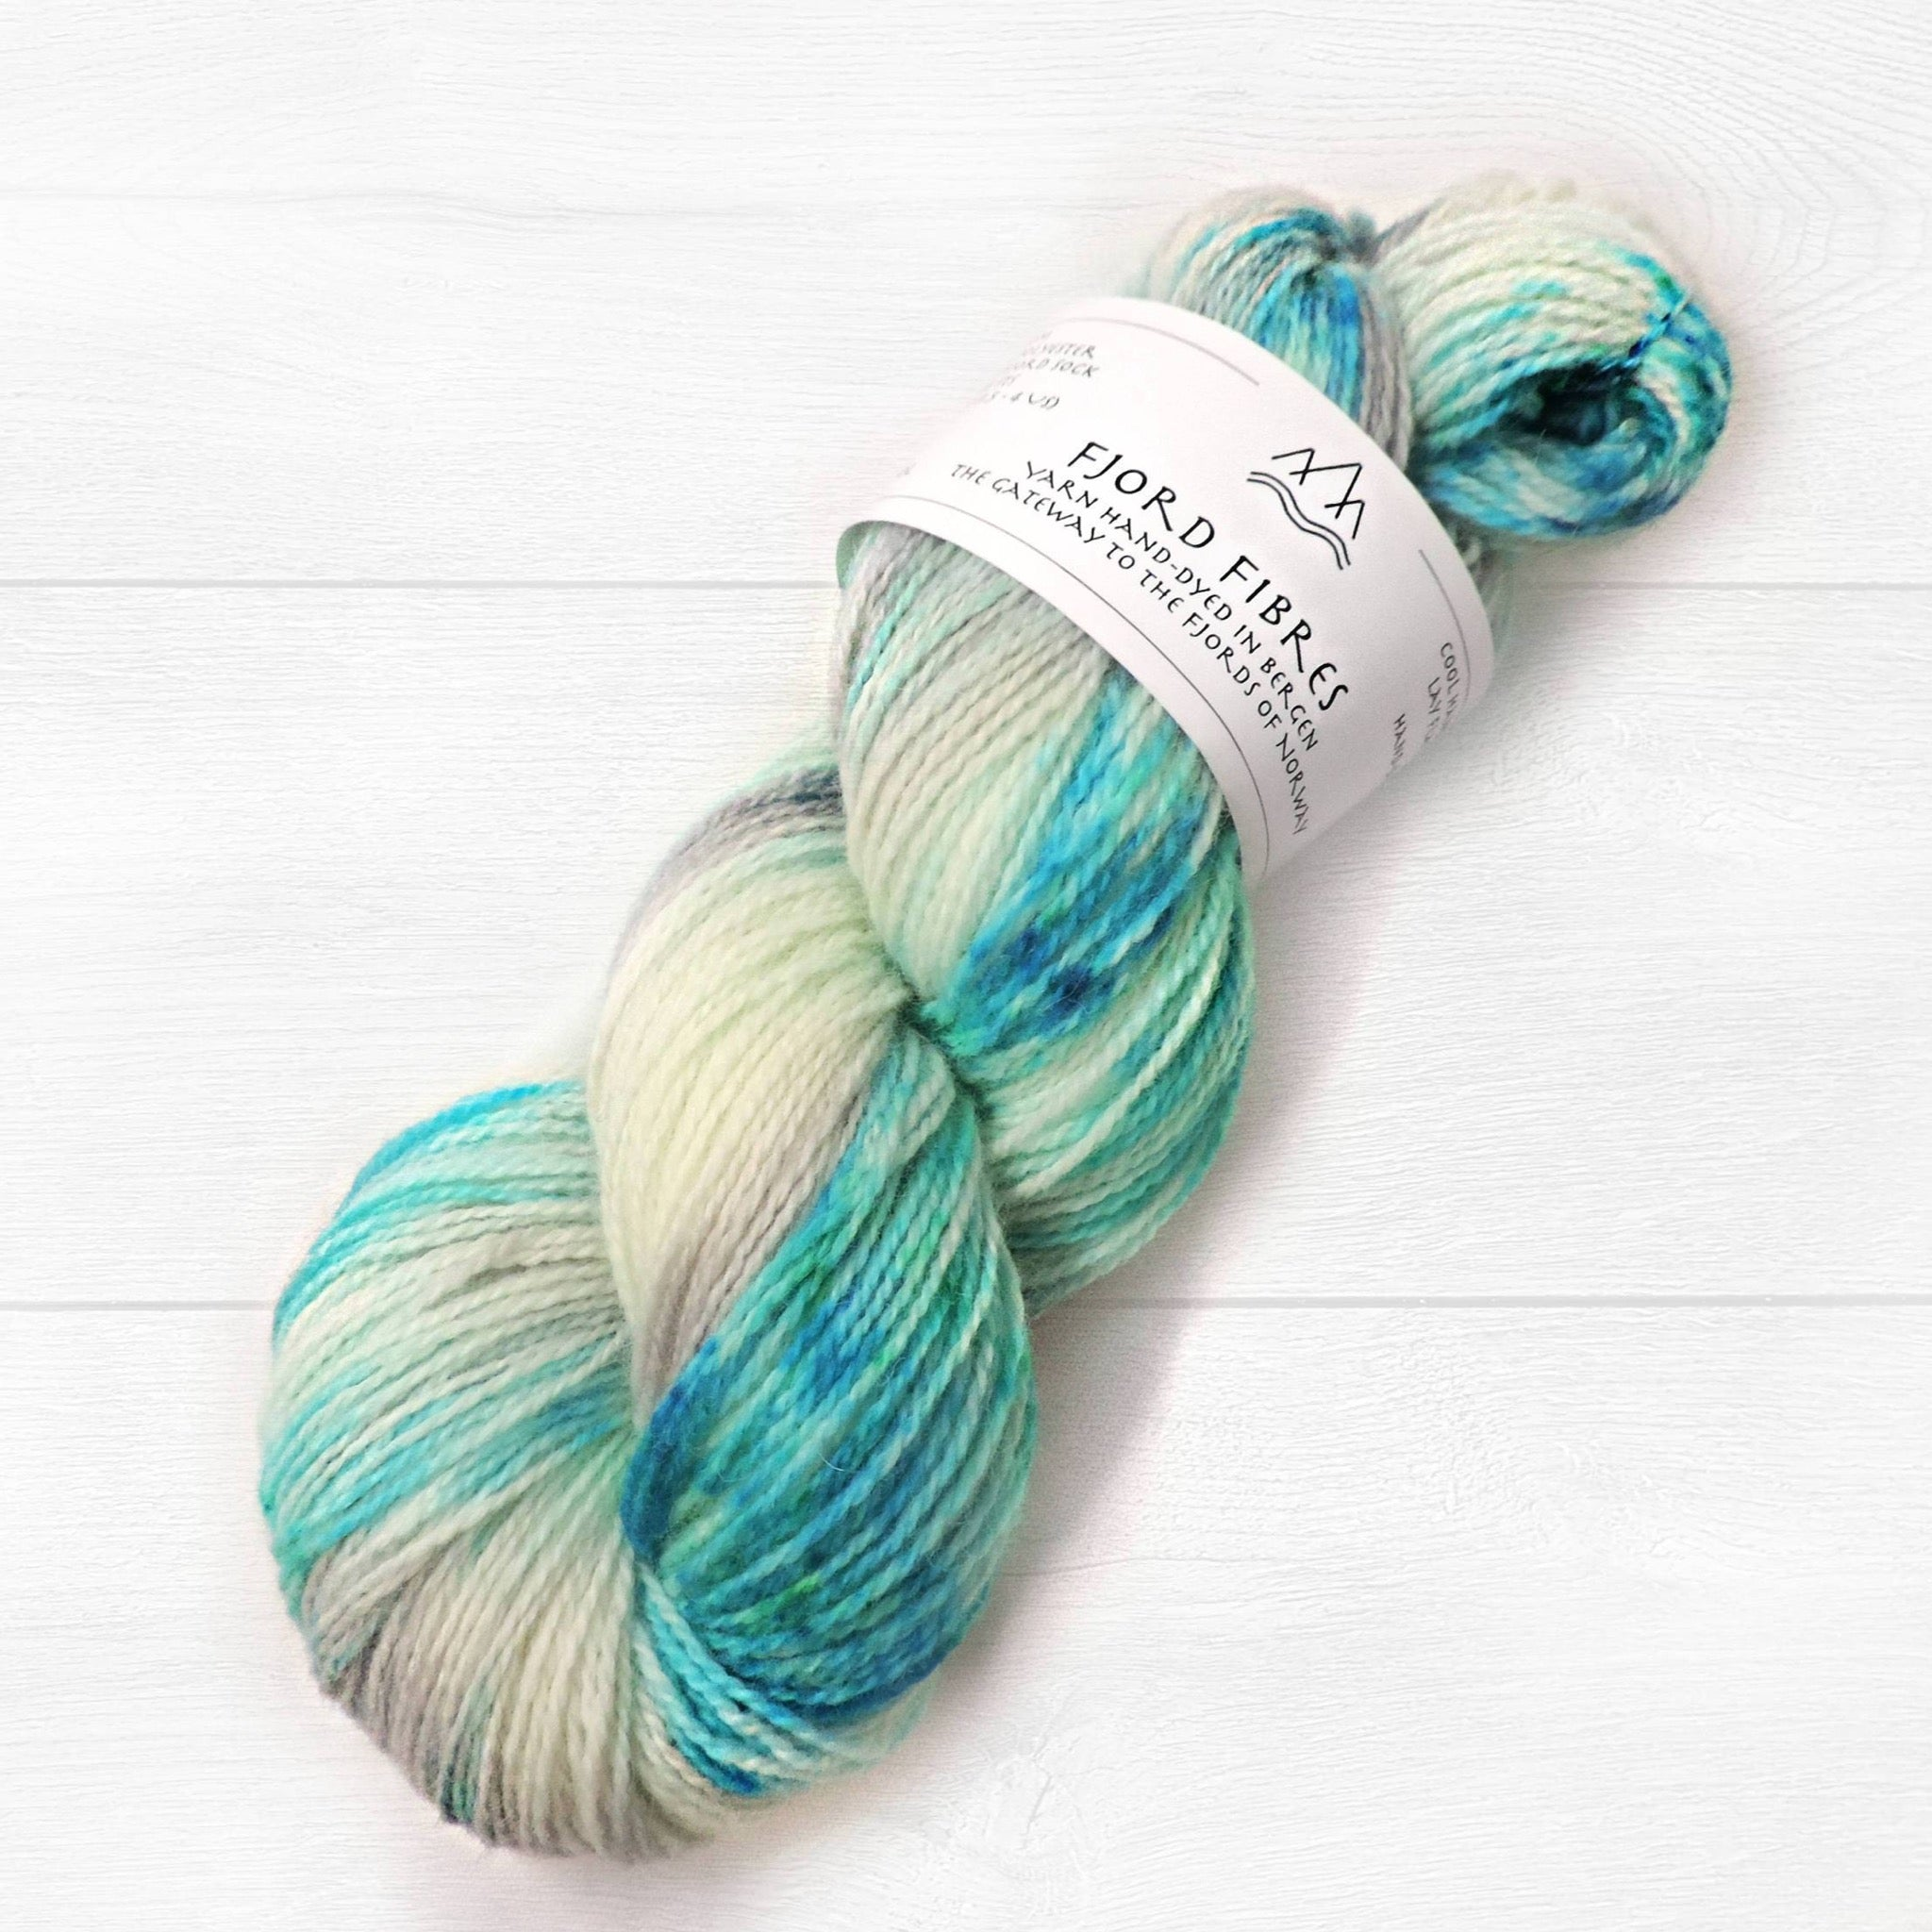 Ice Flow - Trollfjord sock - Hand Dyed Yarn - Speckled Yarn